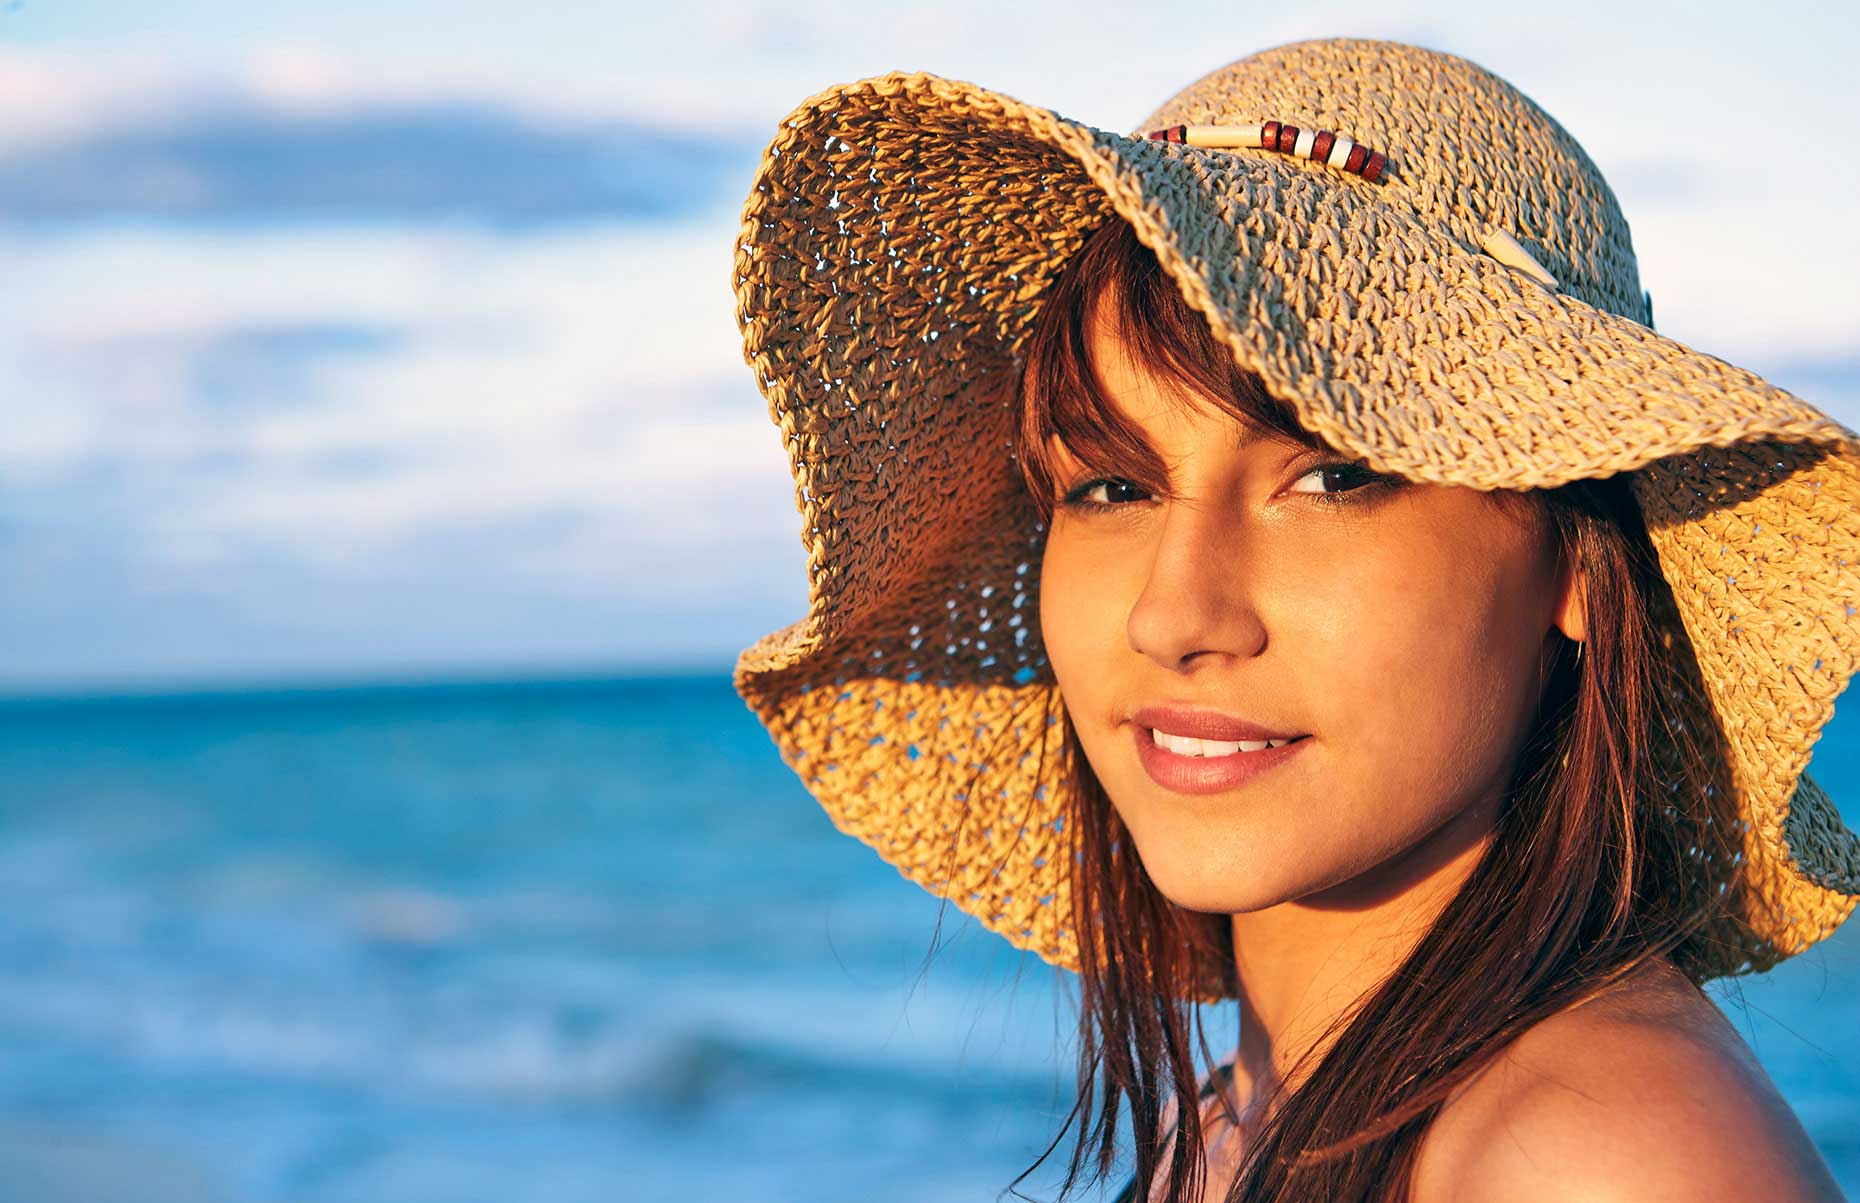 Photography_Children and Teens_Teen Girl in Straw Hat at Beach-Tony Garcia